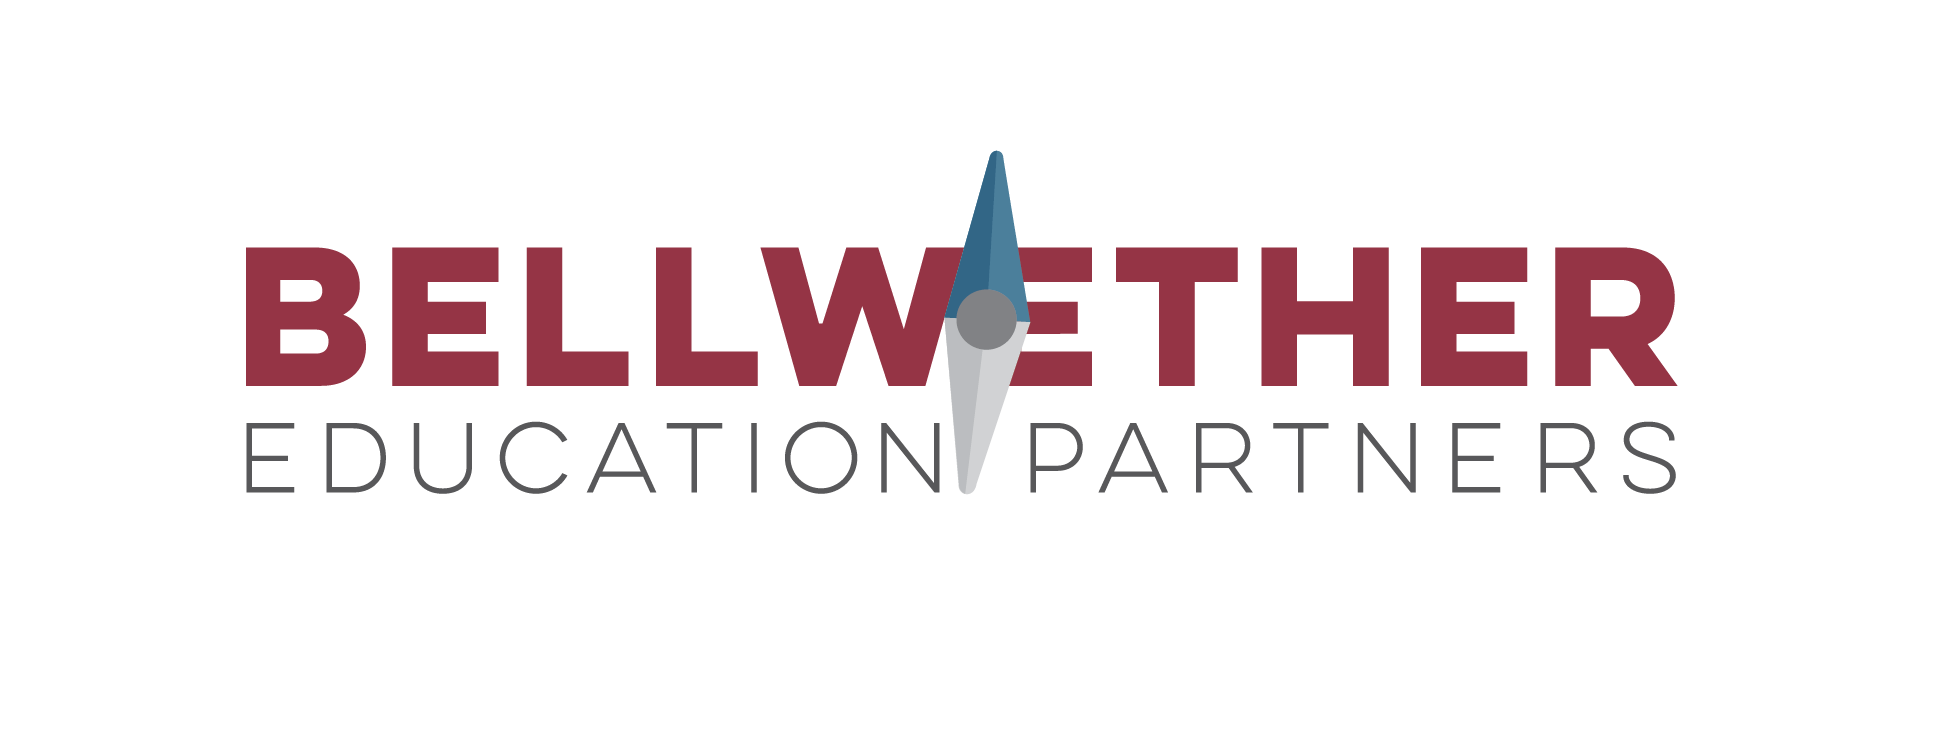 Bellwether Education Partners icon